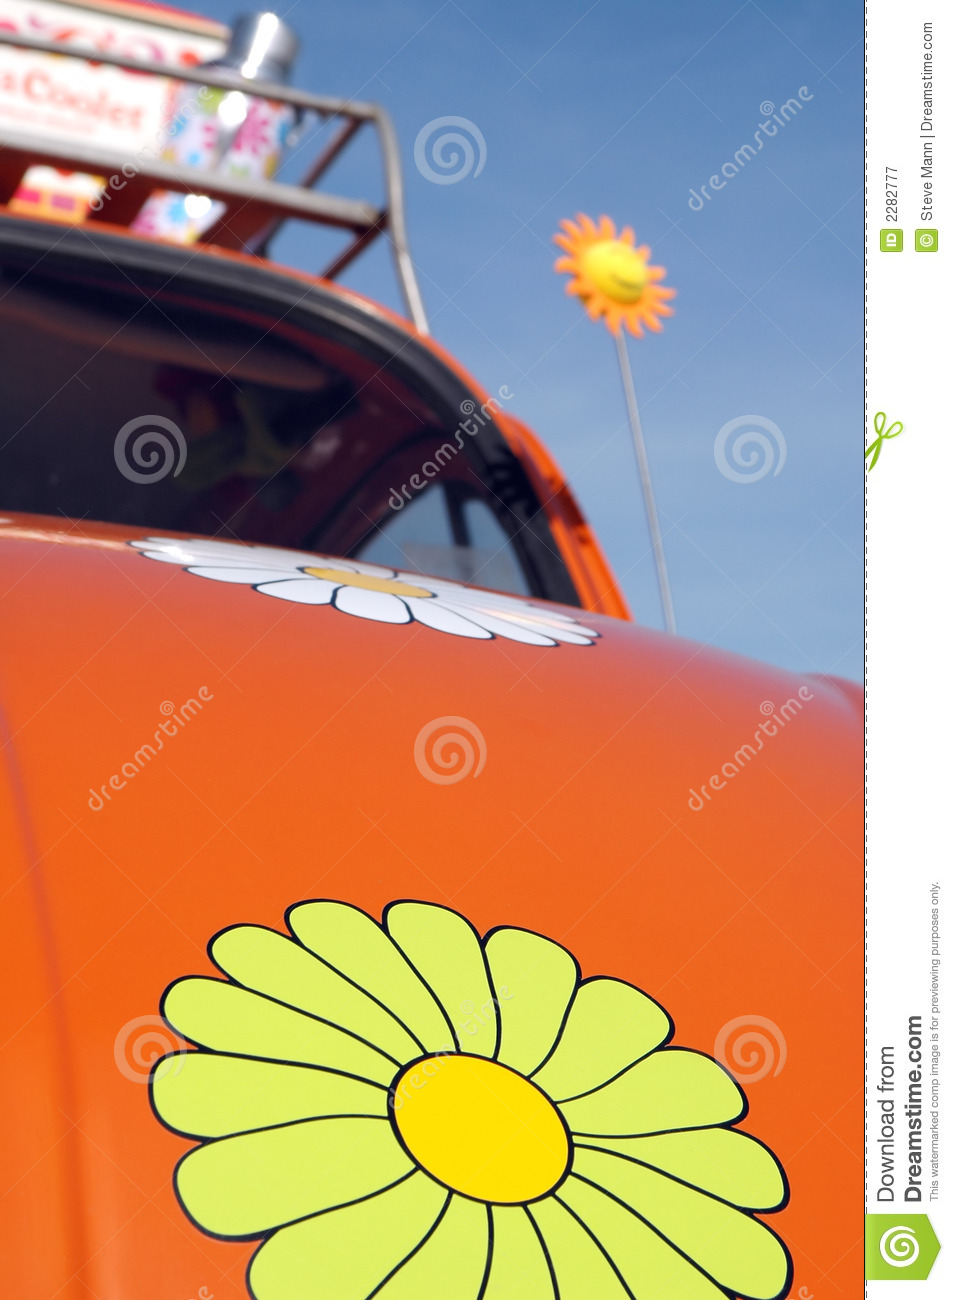 hippie road trip stock image image of daisy cars flower